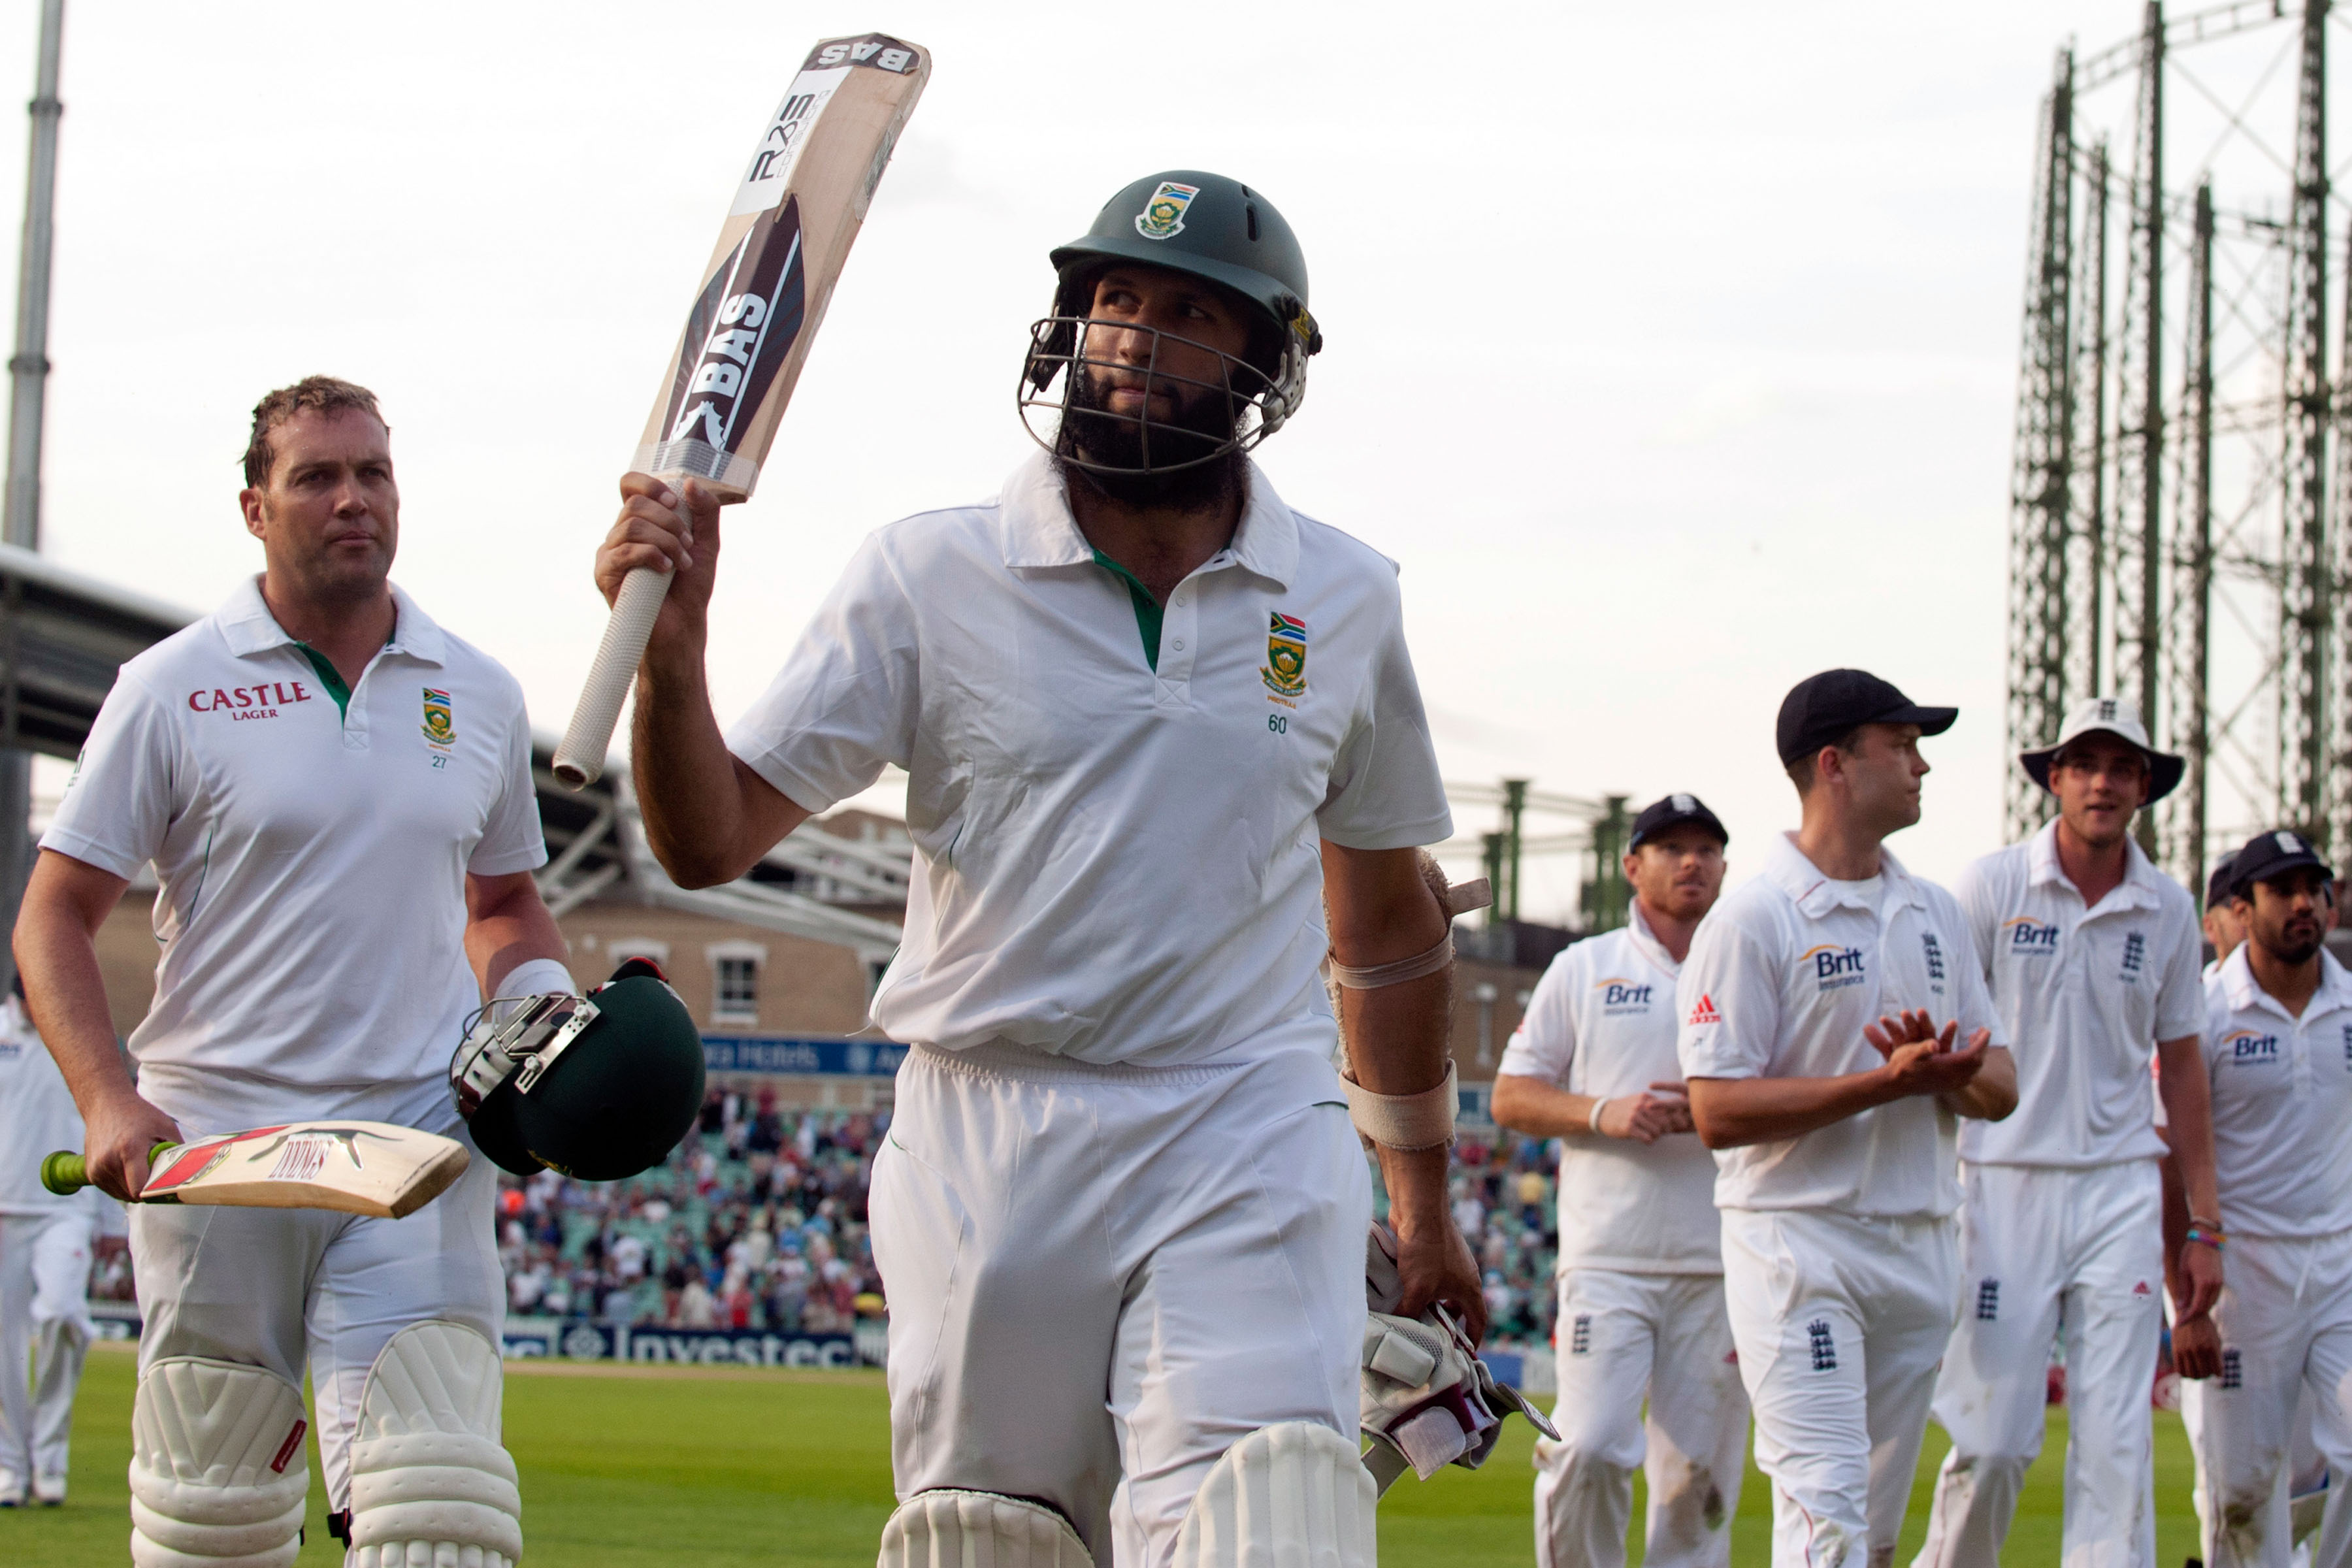 21 July 2012: Jacques Kallis (left) and Hashim Amla (second from left) leaving the field at The Oval in London, England. Amla scored a triple Test century during the first Test of this series against England and is still the only South African to do so. (Photograph by Reuters/Philip Brown)